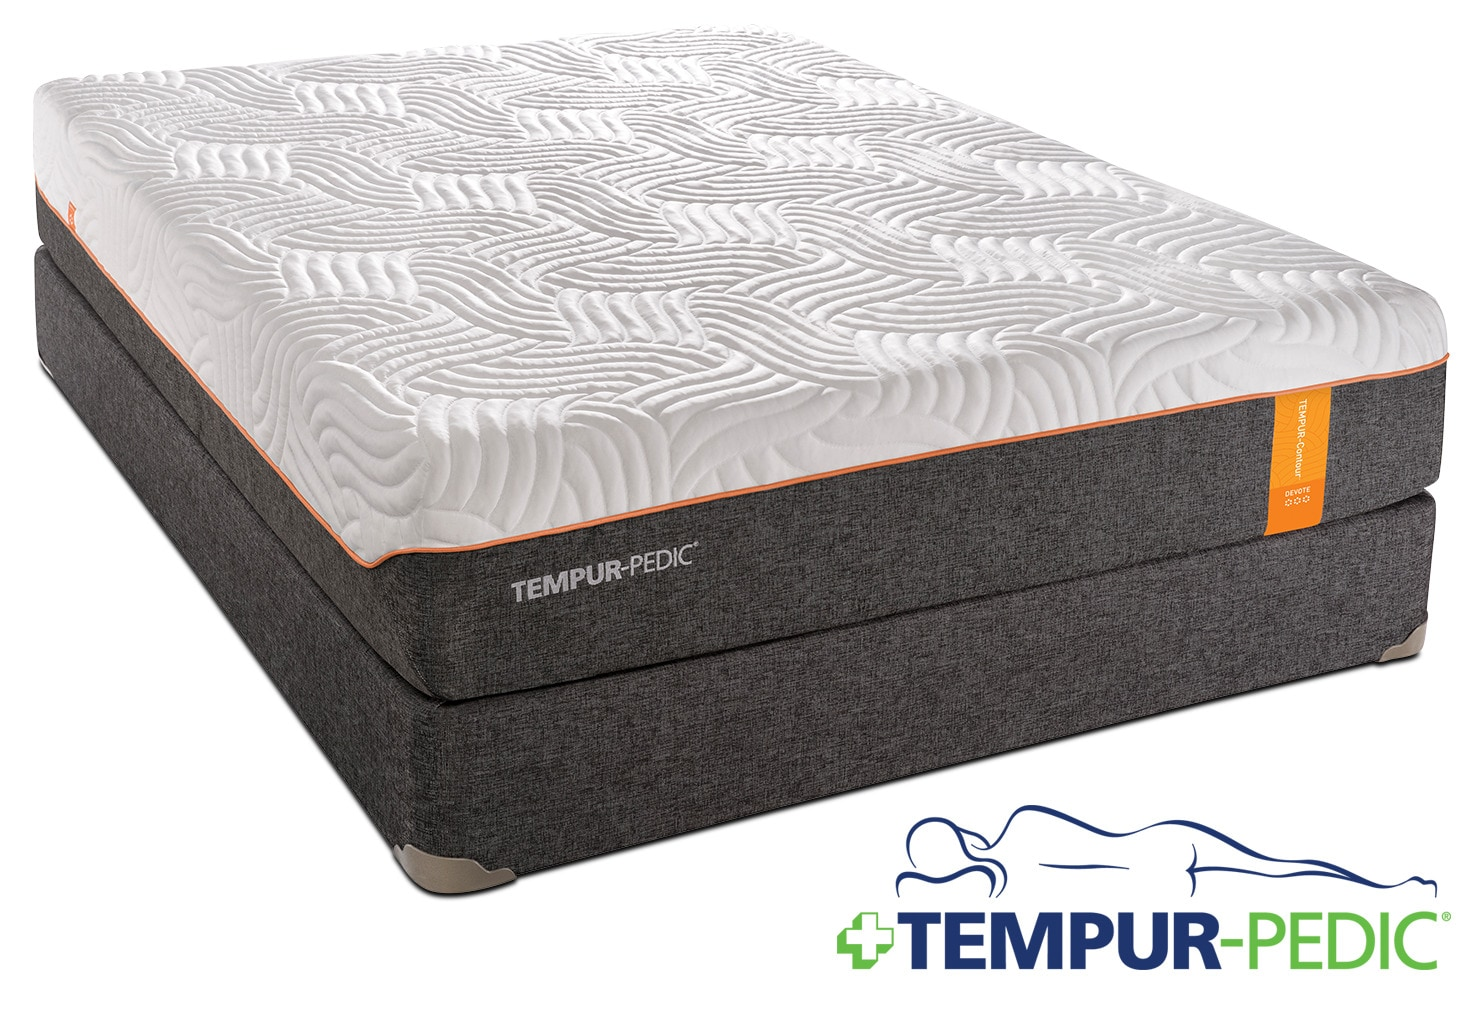 Tempur-Pedic Devote Firm Queen Mattress and Boxspring Set